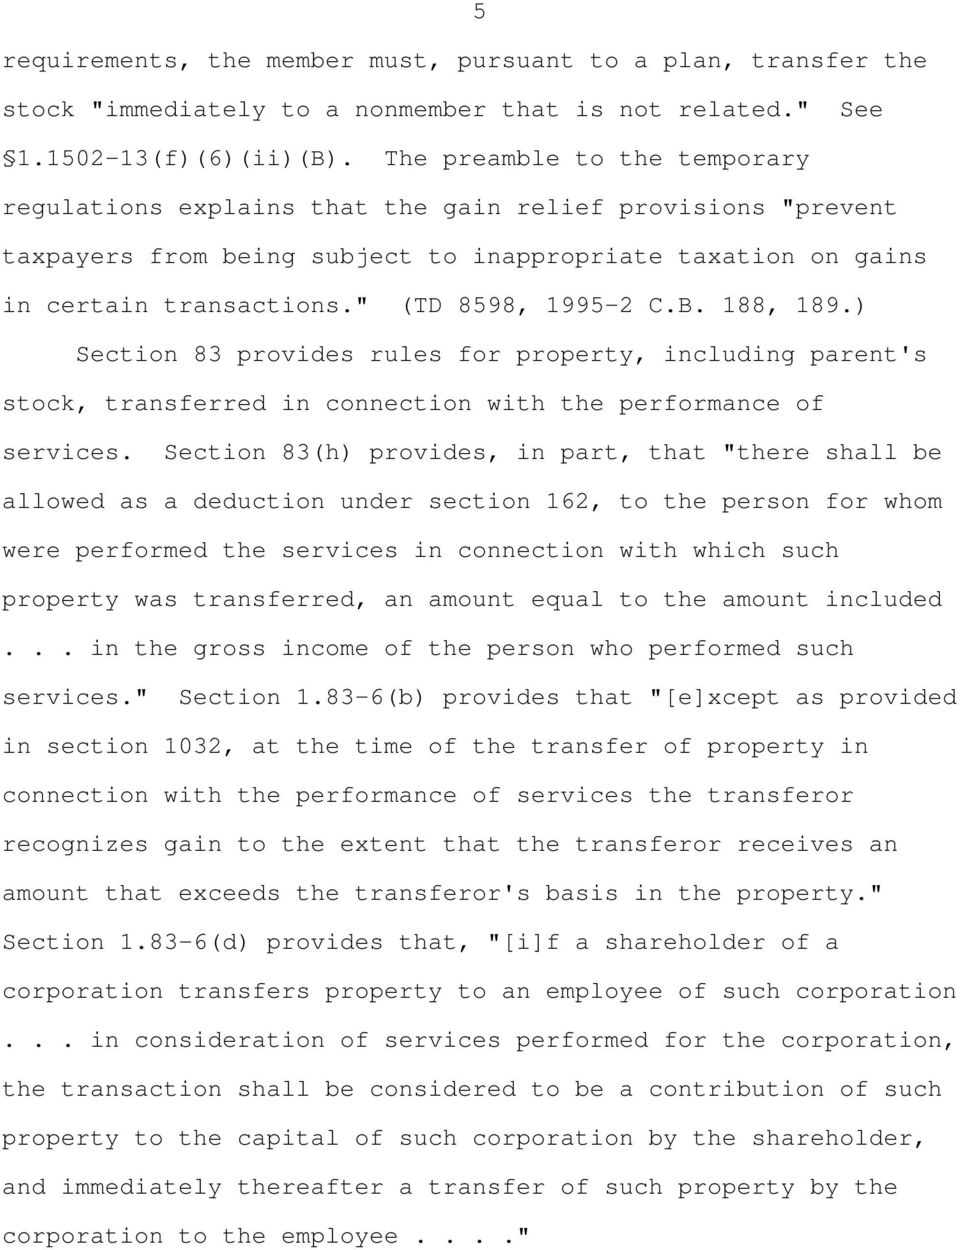 """ (TD 8598, 1995-2 C.B. 188, 189.) Section 83 provides rules for property, including parent's stock, transferred in connection with the performance of services."